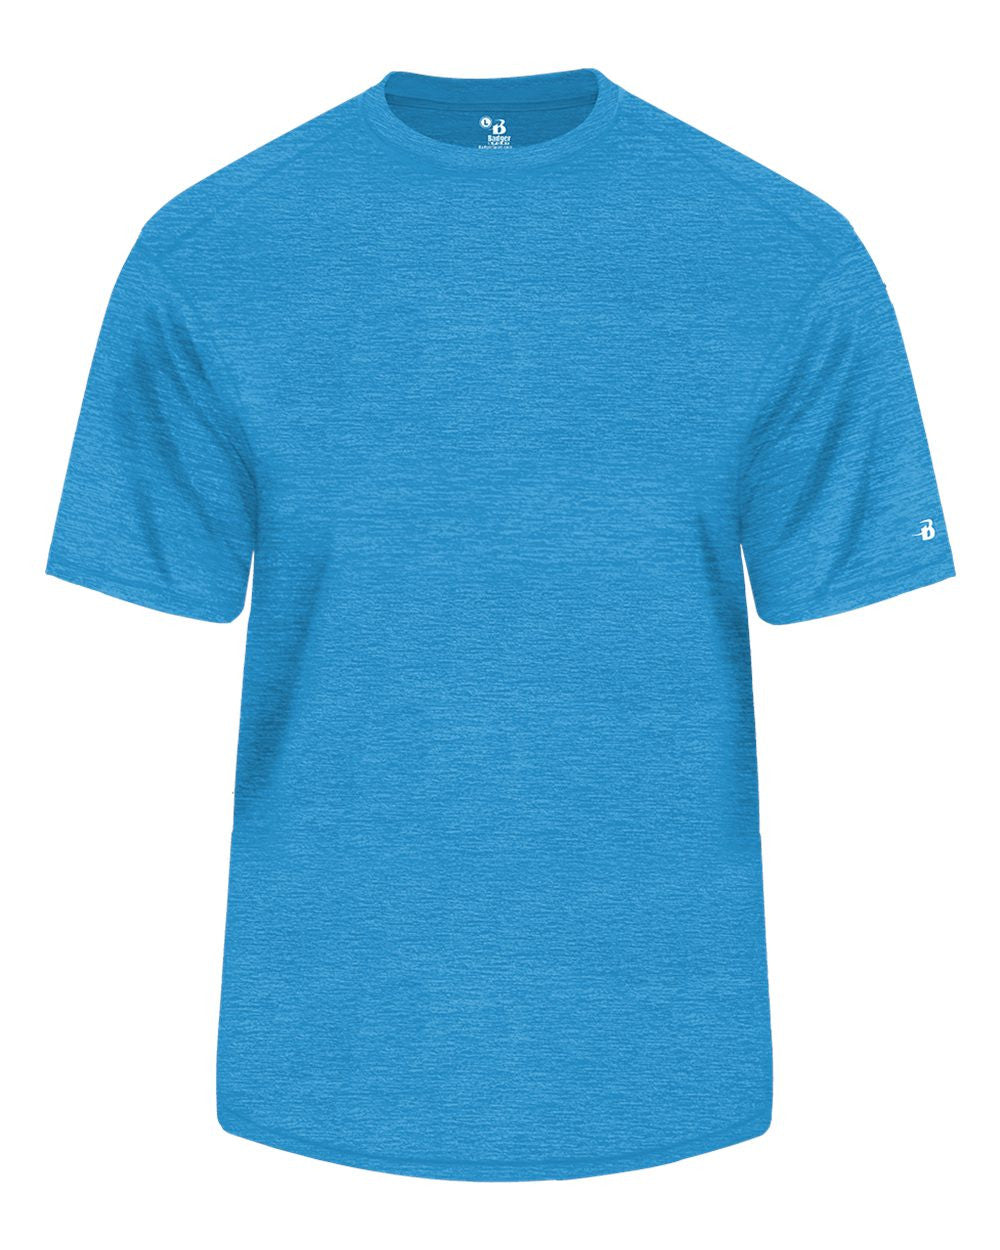 b3857dbe7e9 Vienna Lacrosse OUTLAWS Men's SWAG Tonal Blend Mens Tee - Columbia Blue